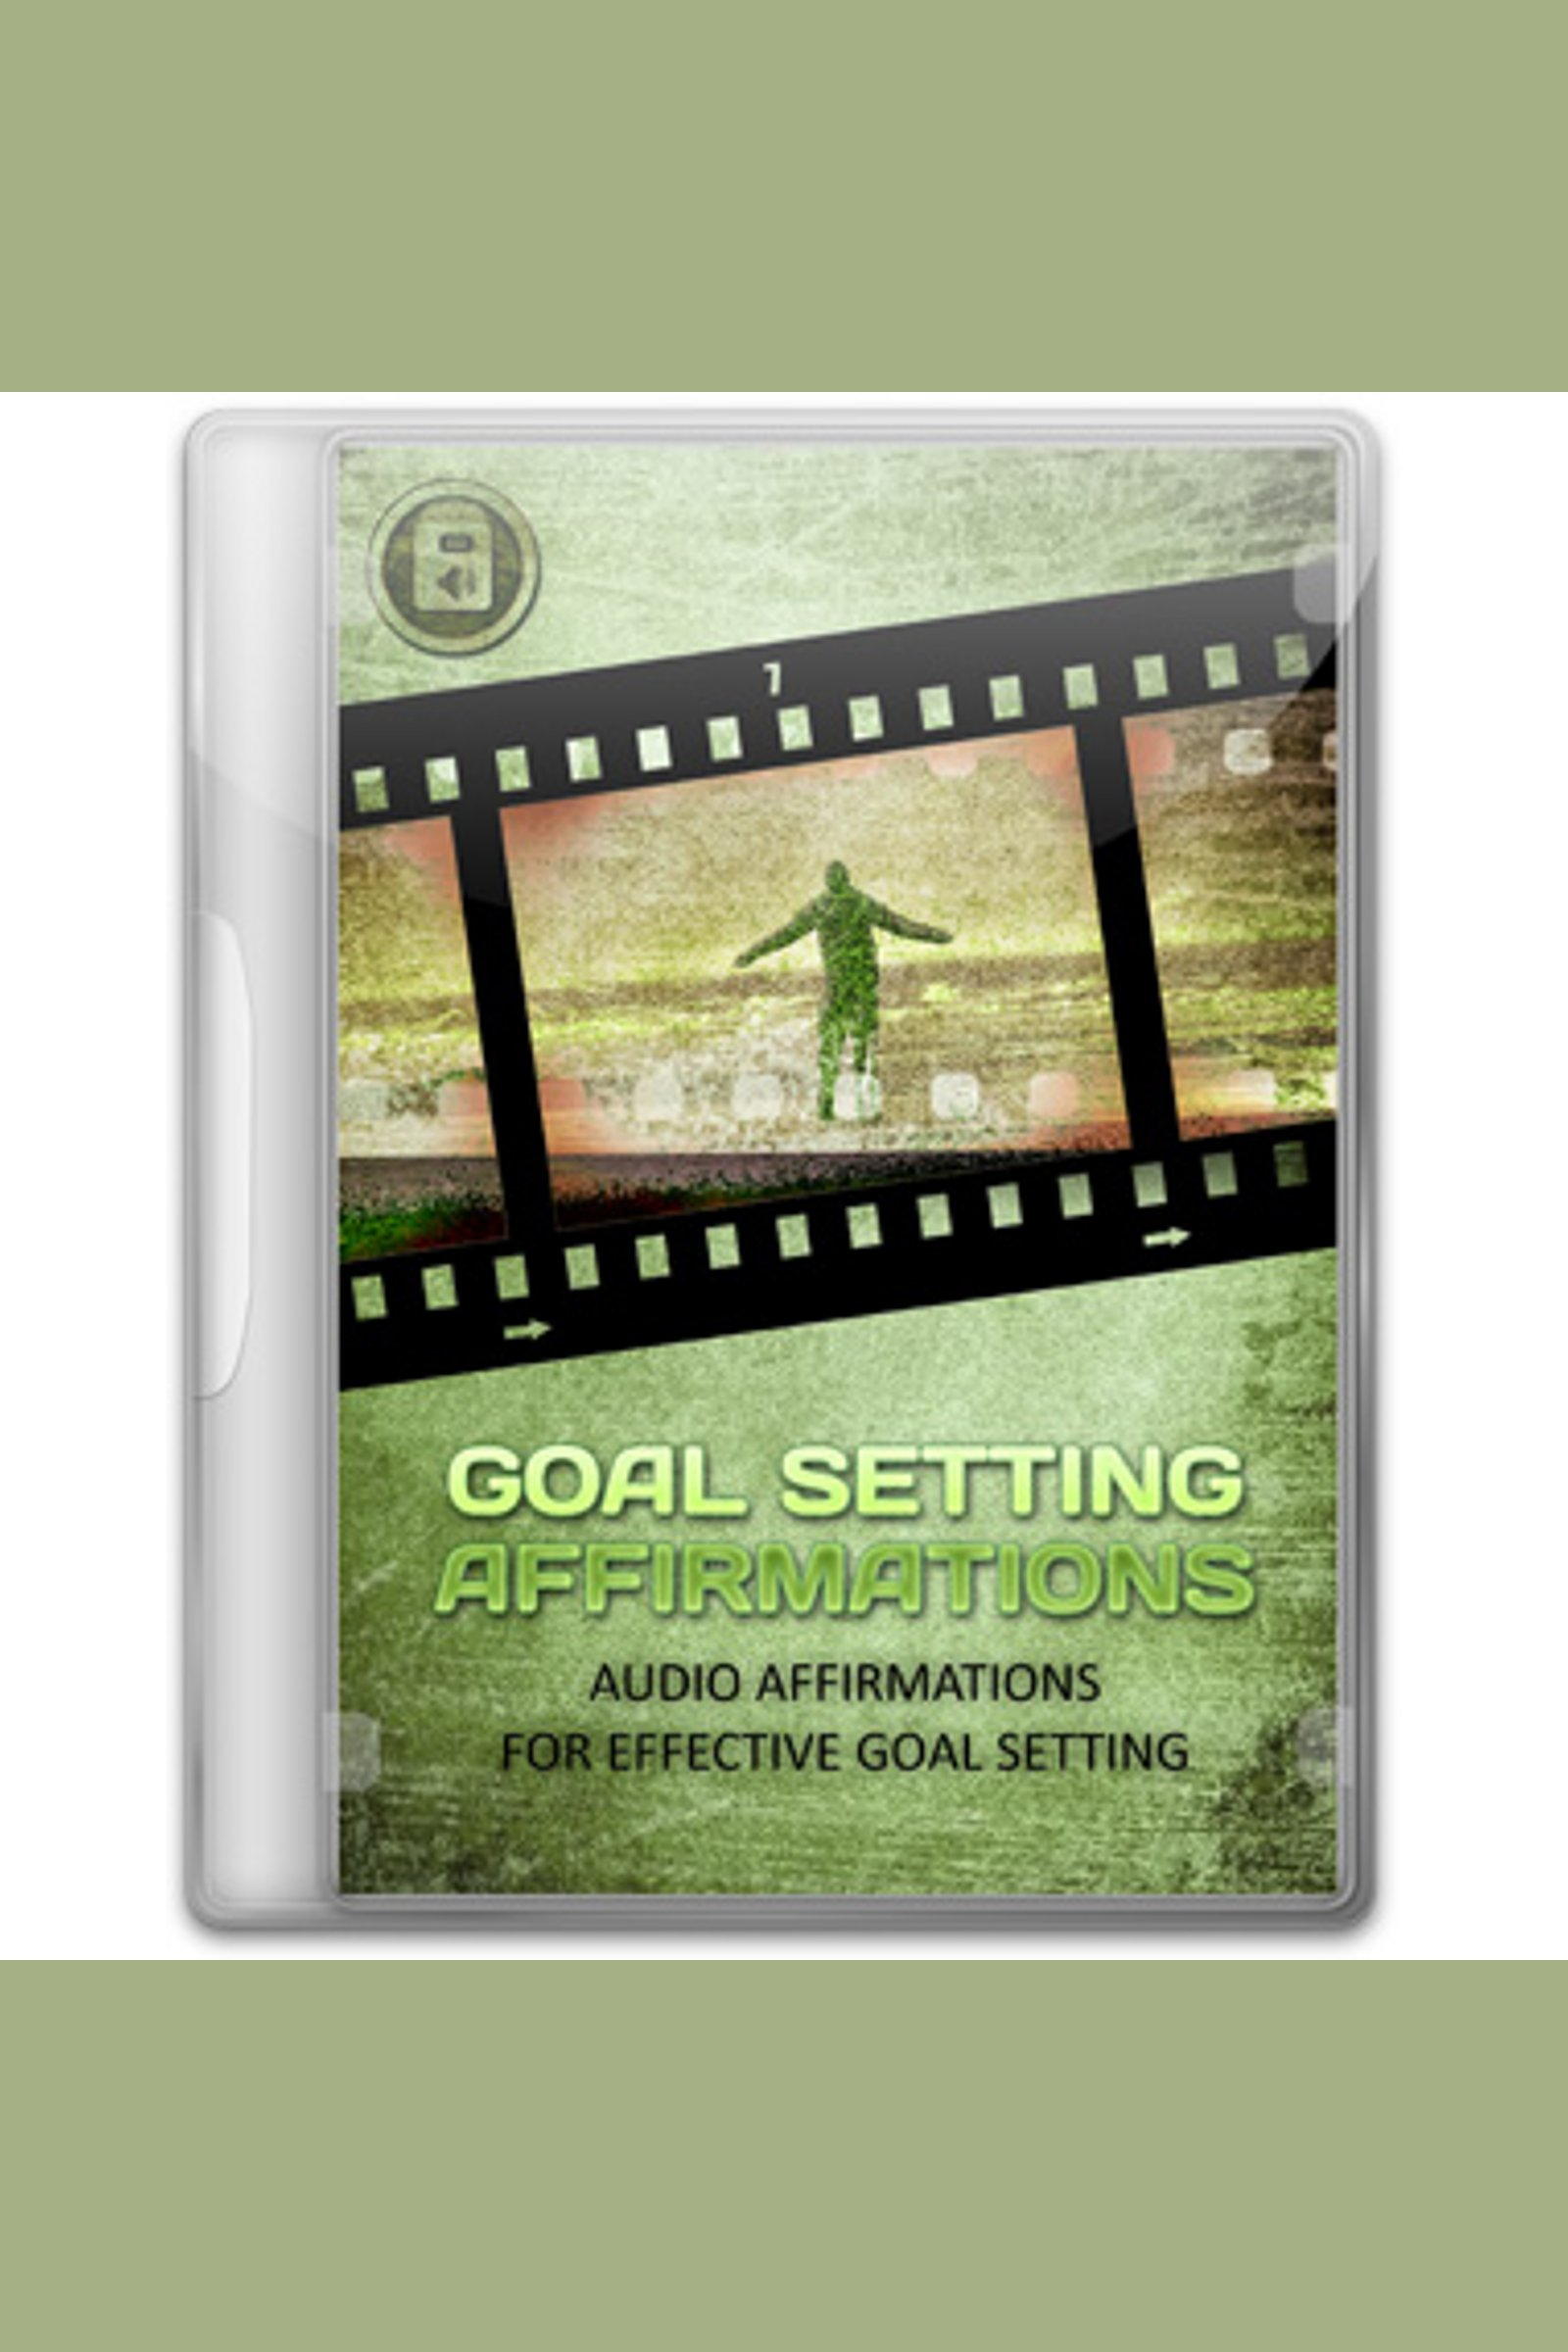 Goal Setting Affirmations - 5 Minutes Daily to Reach The Goals You Set In Your Life